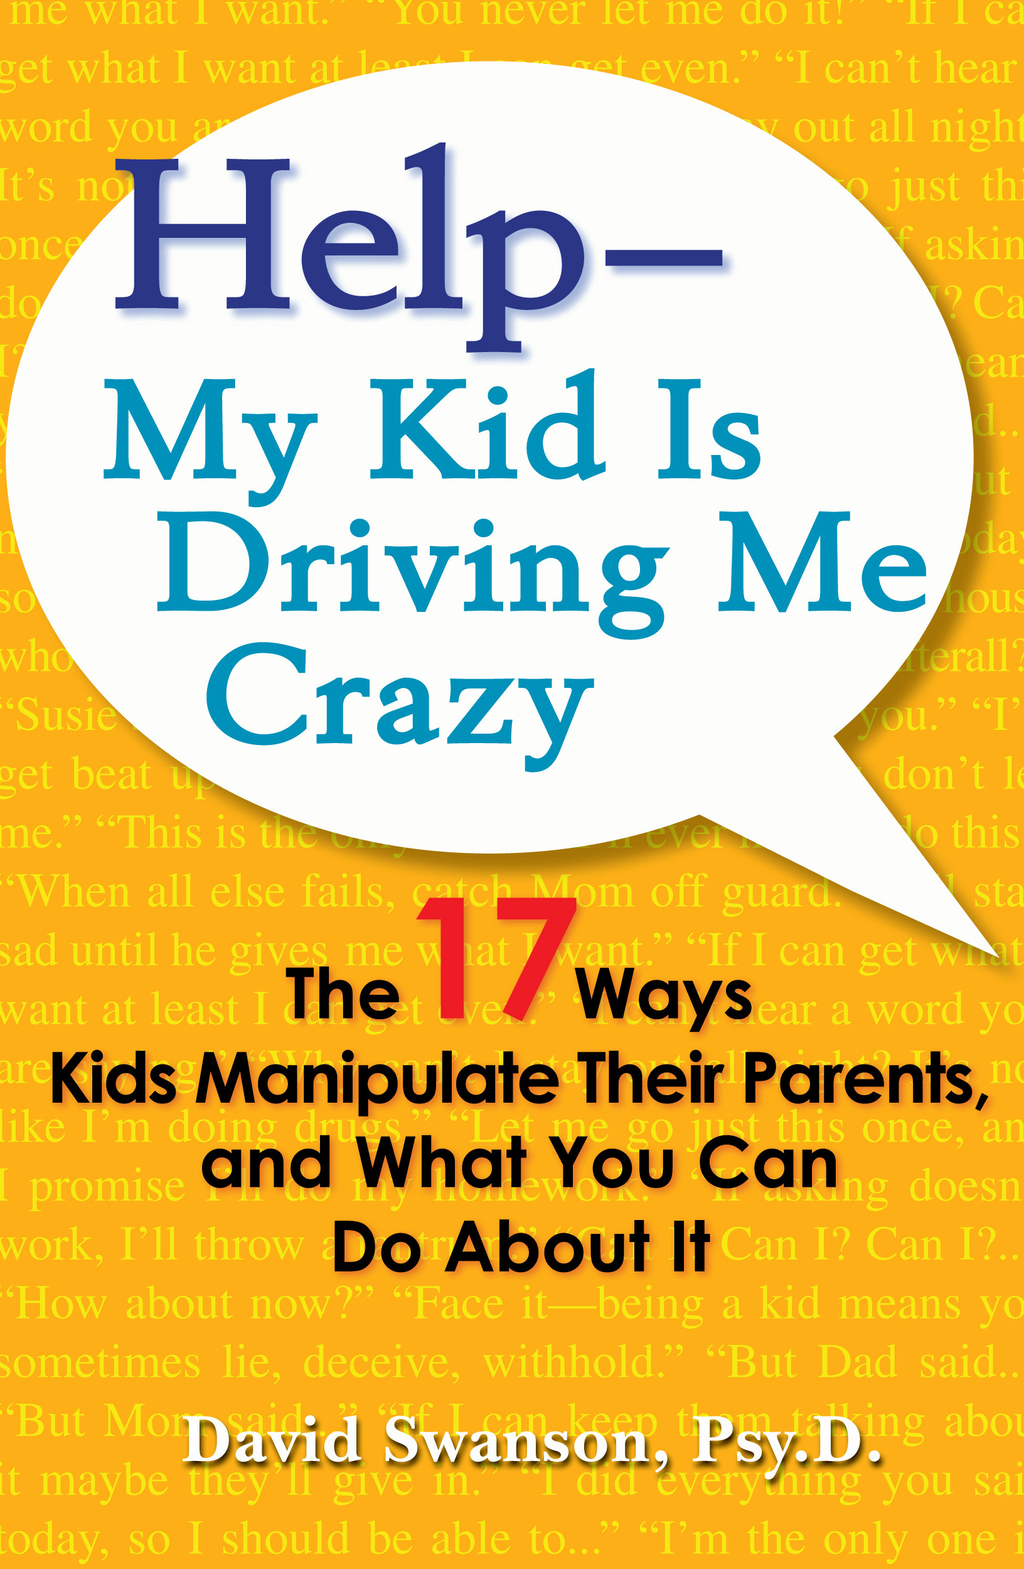 Help--My Kid is Driving Me Crazy